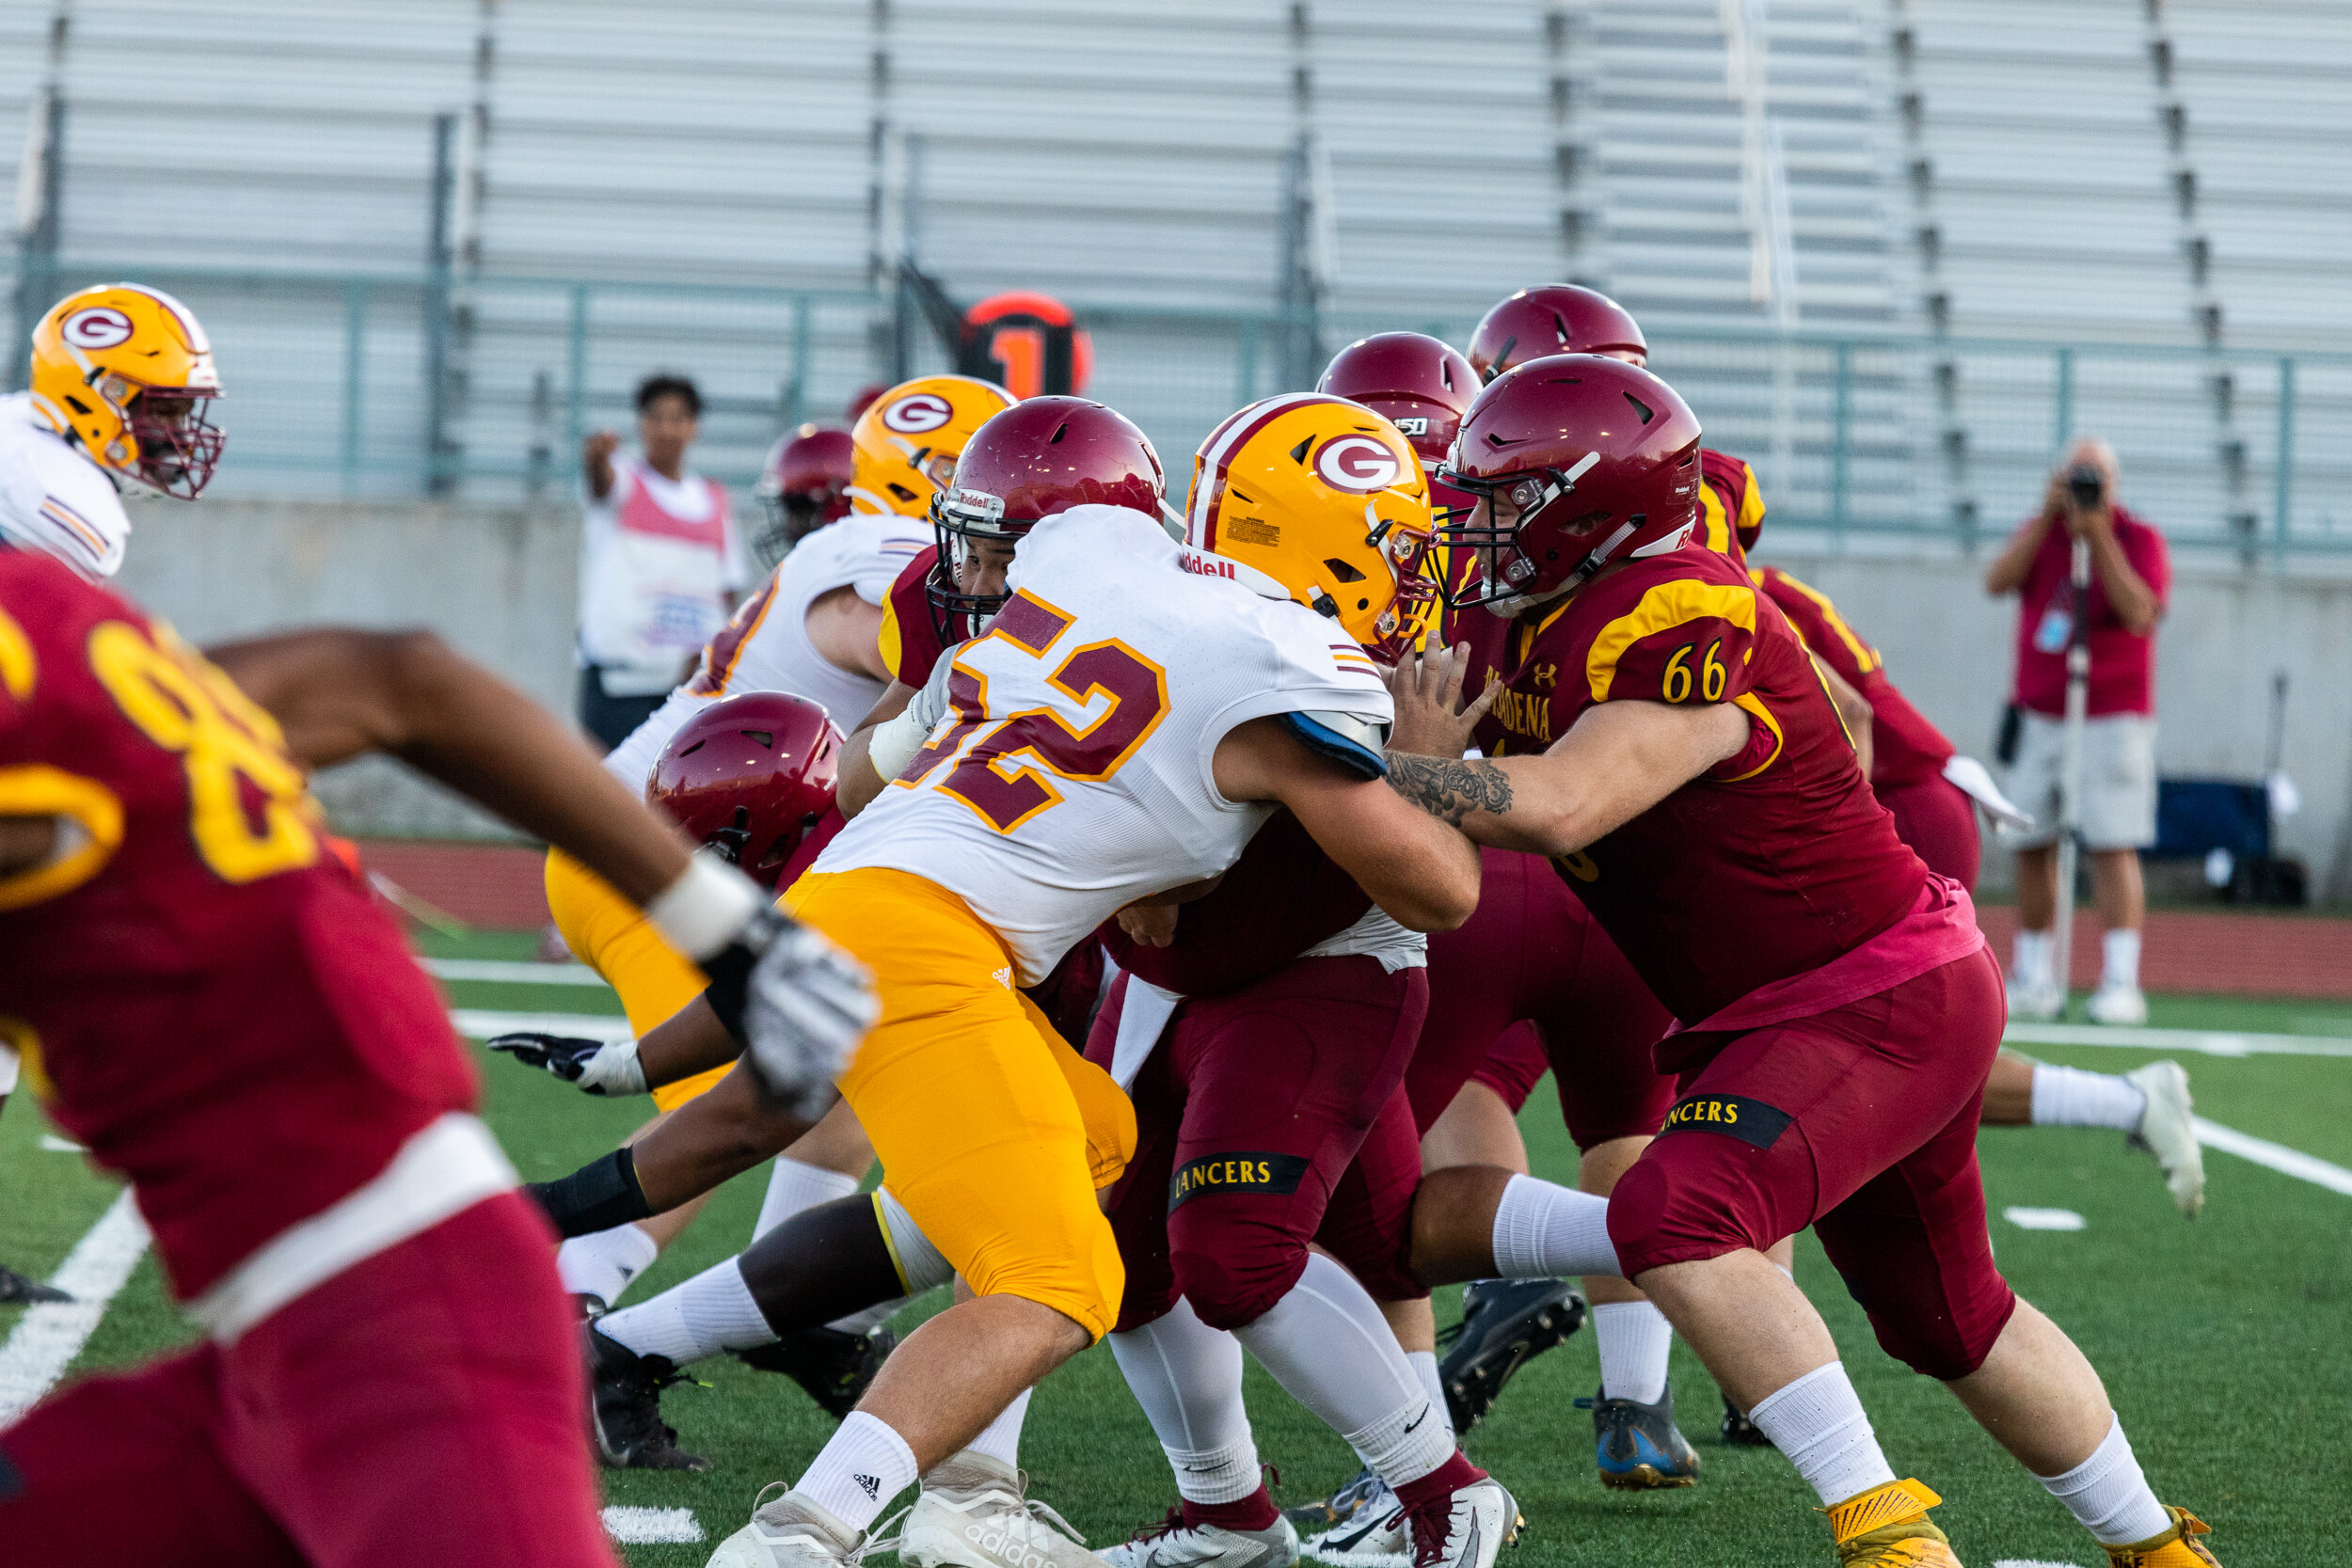 Nicholas Slobin/ Courier Pasadena City College Lancers and Saddleback College Gauchos collide during a SCFA Non-League game at PCC's Robinson Stadium on Saturday, September 21, 2019.